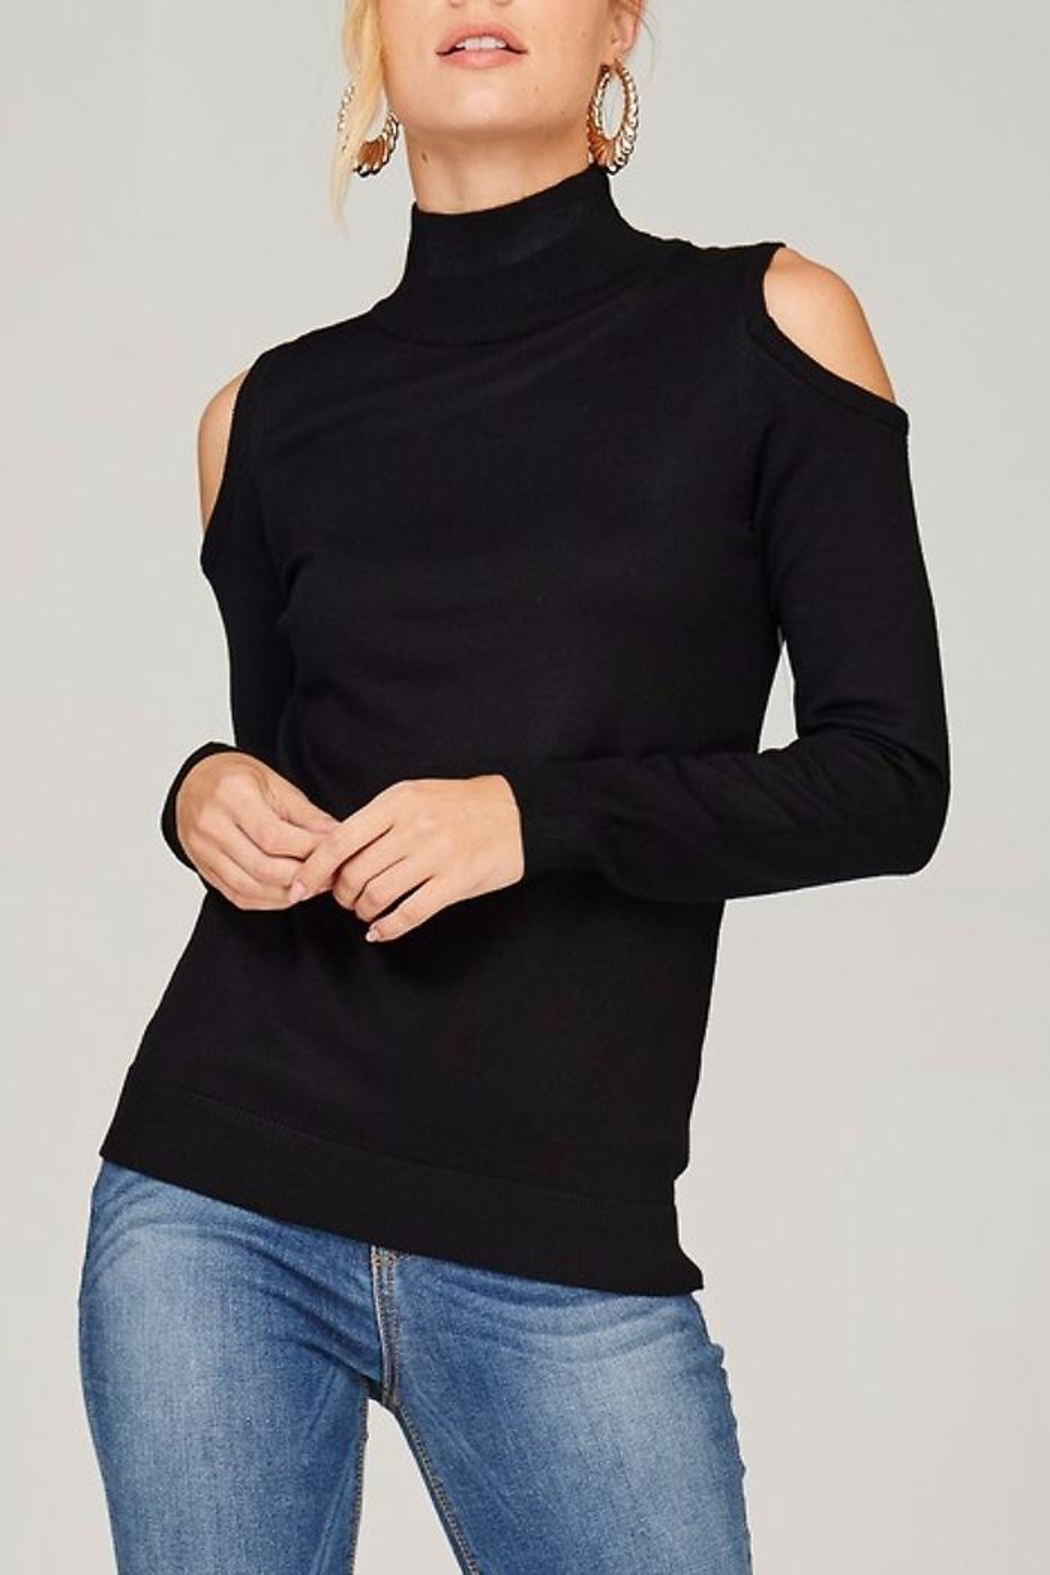 People Outfitter Knit Mock Neck Sweater - Main Image